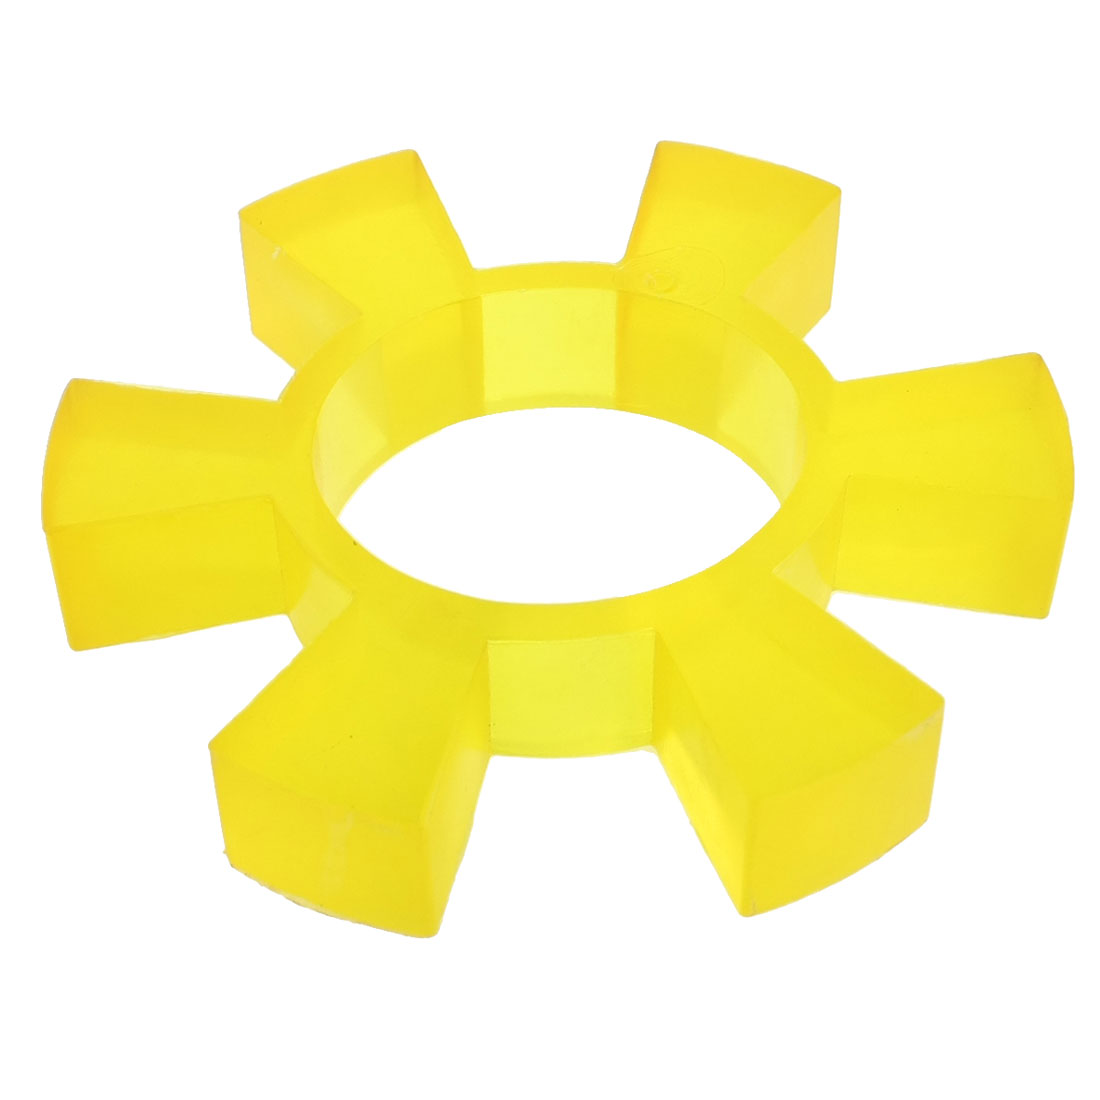 Clear Yellow 6 Petal PU Elastic Damper Coupling Insert Spider Cushion 6 1/2""